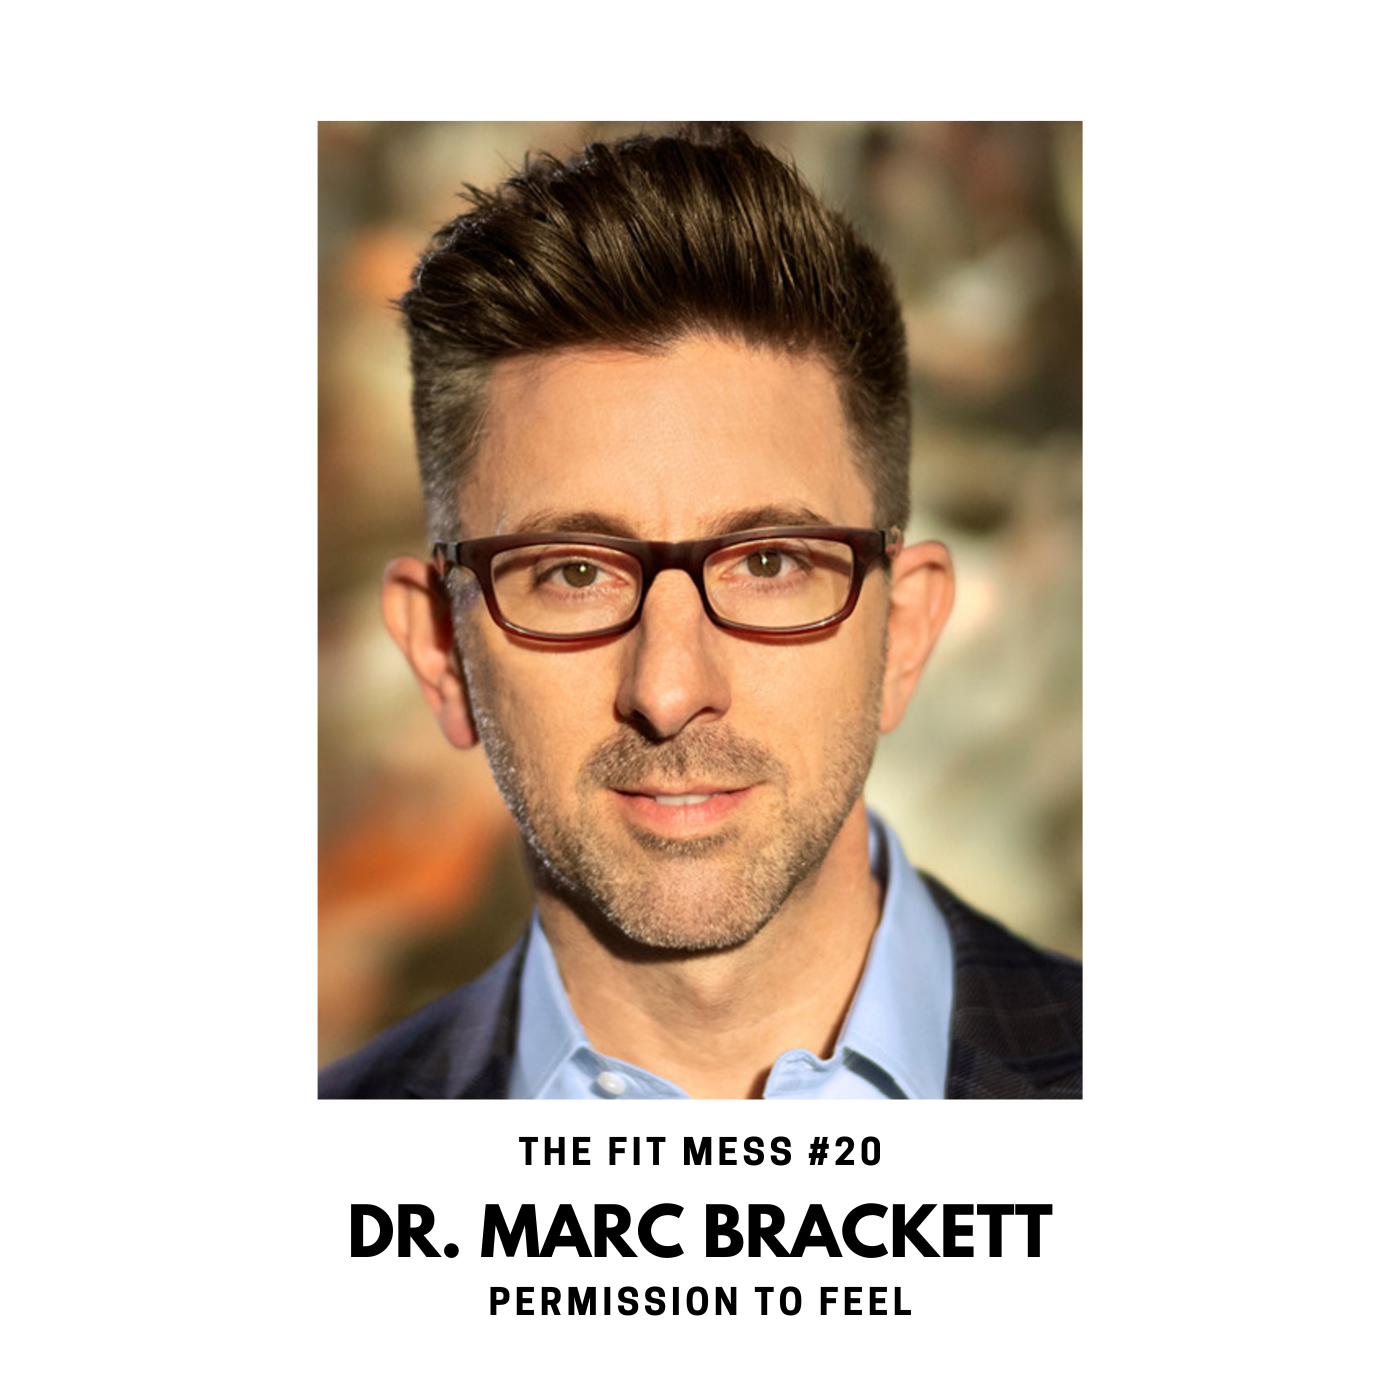 Permission to Feel with Dr. Marc Brackett